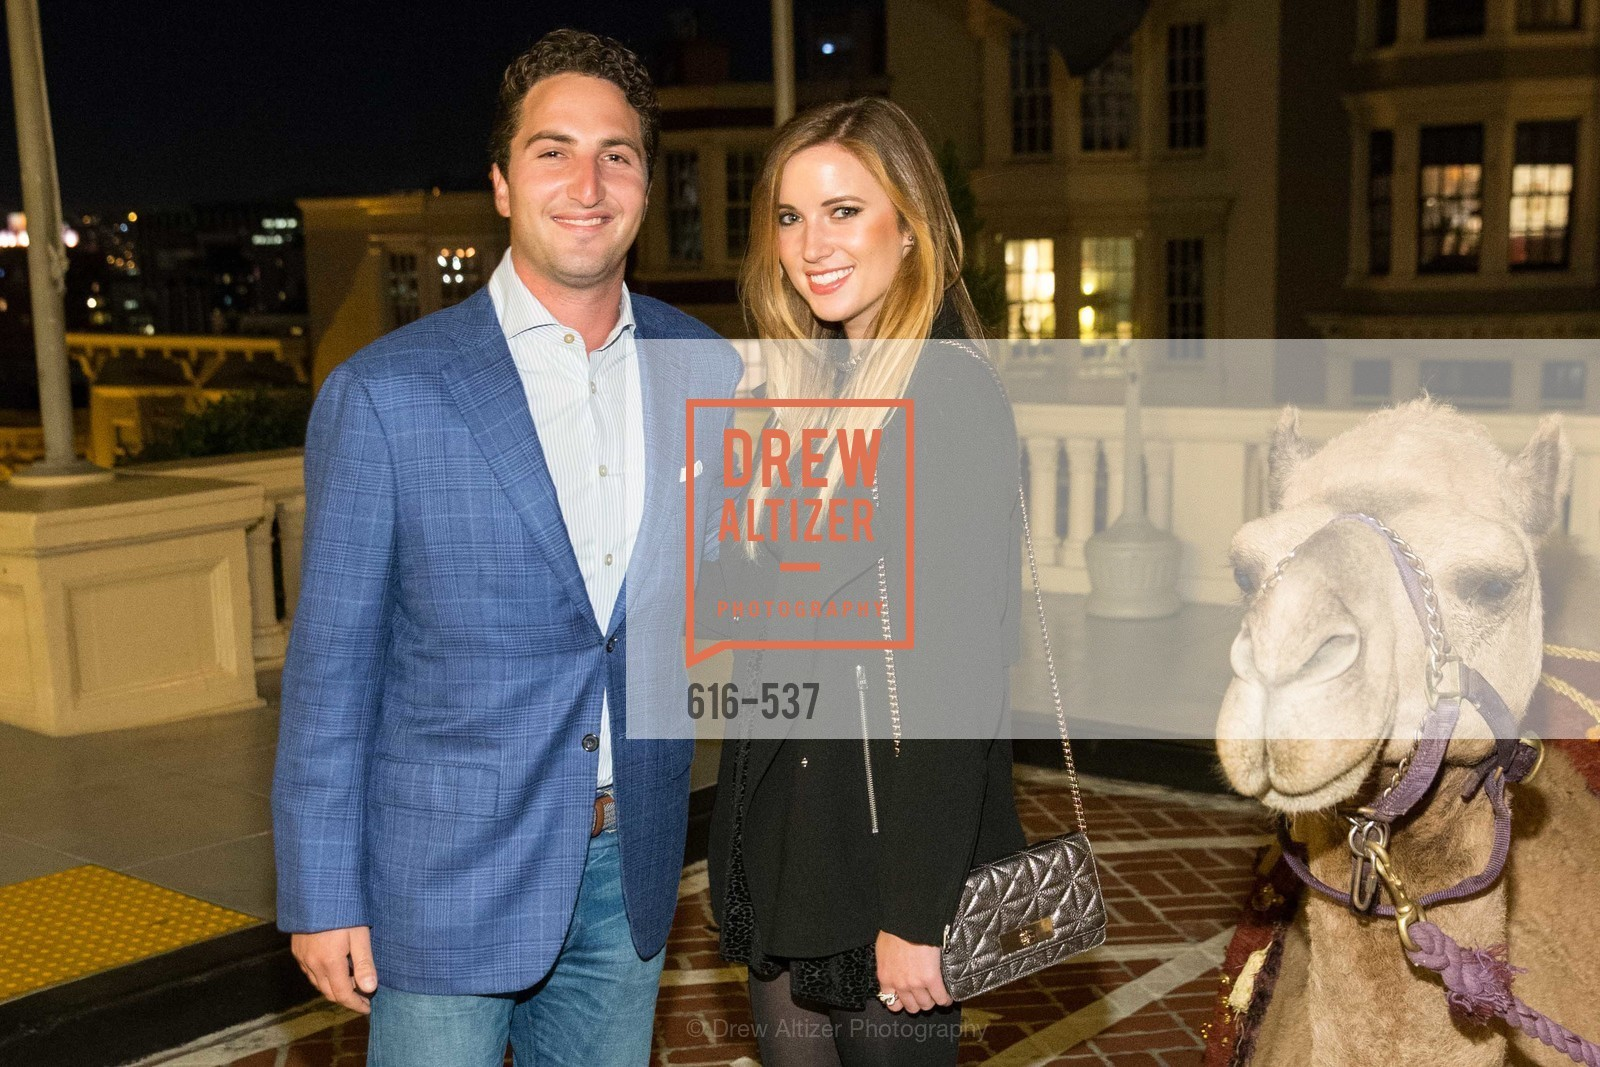 Jason Goldman, TOP OF THE MARK'S 75TH Anniversary Party, US, November 6th, 2014,Drew Altizer, Drew Altizer Photography, full-service agency, private events, San Francisco photographer, photographer california